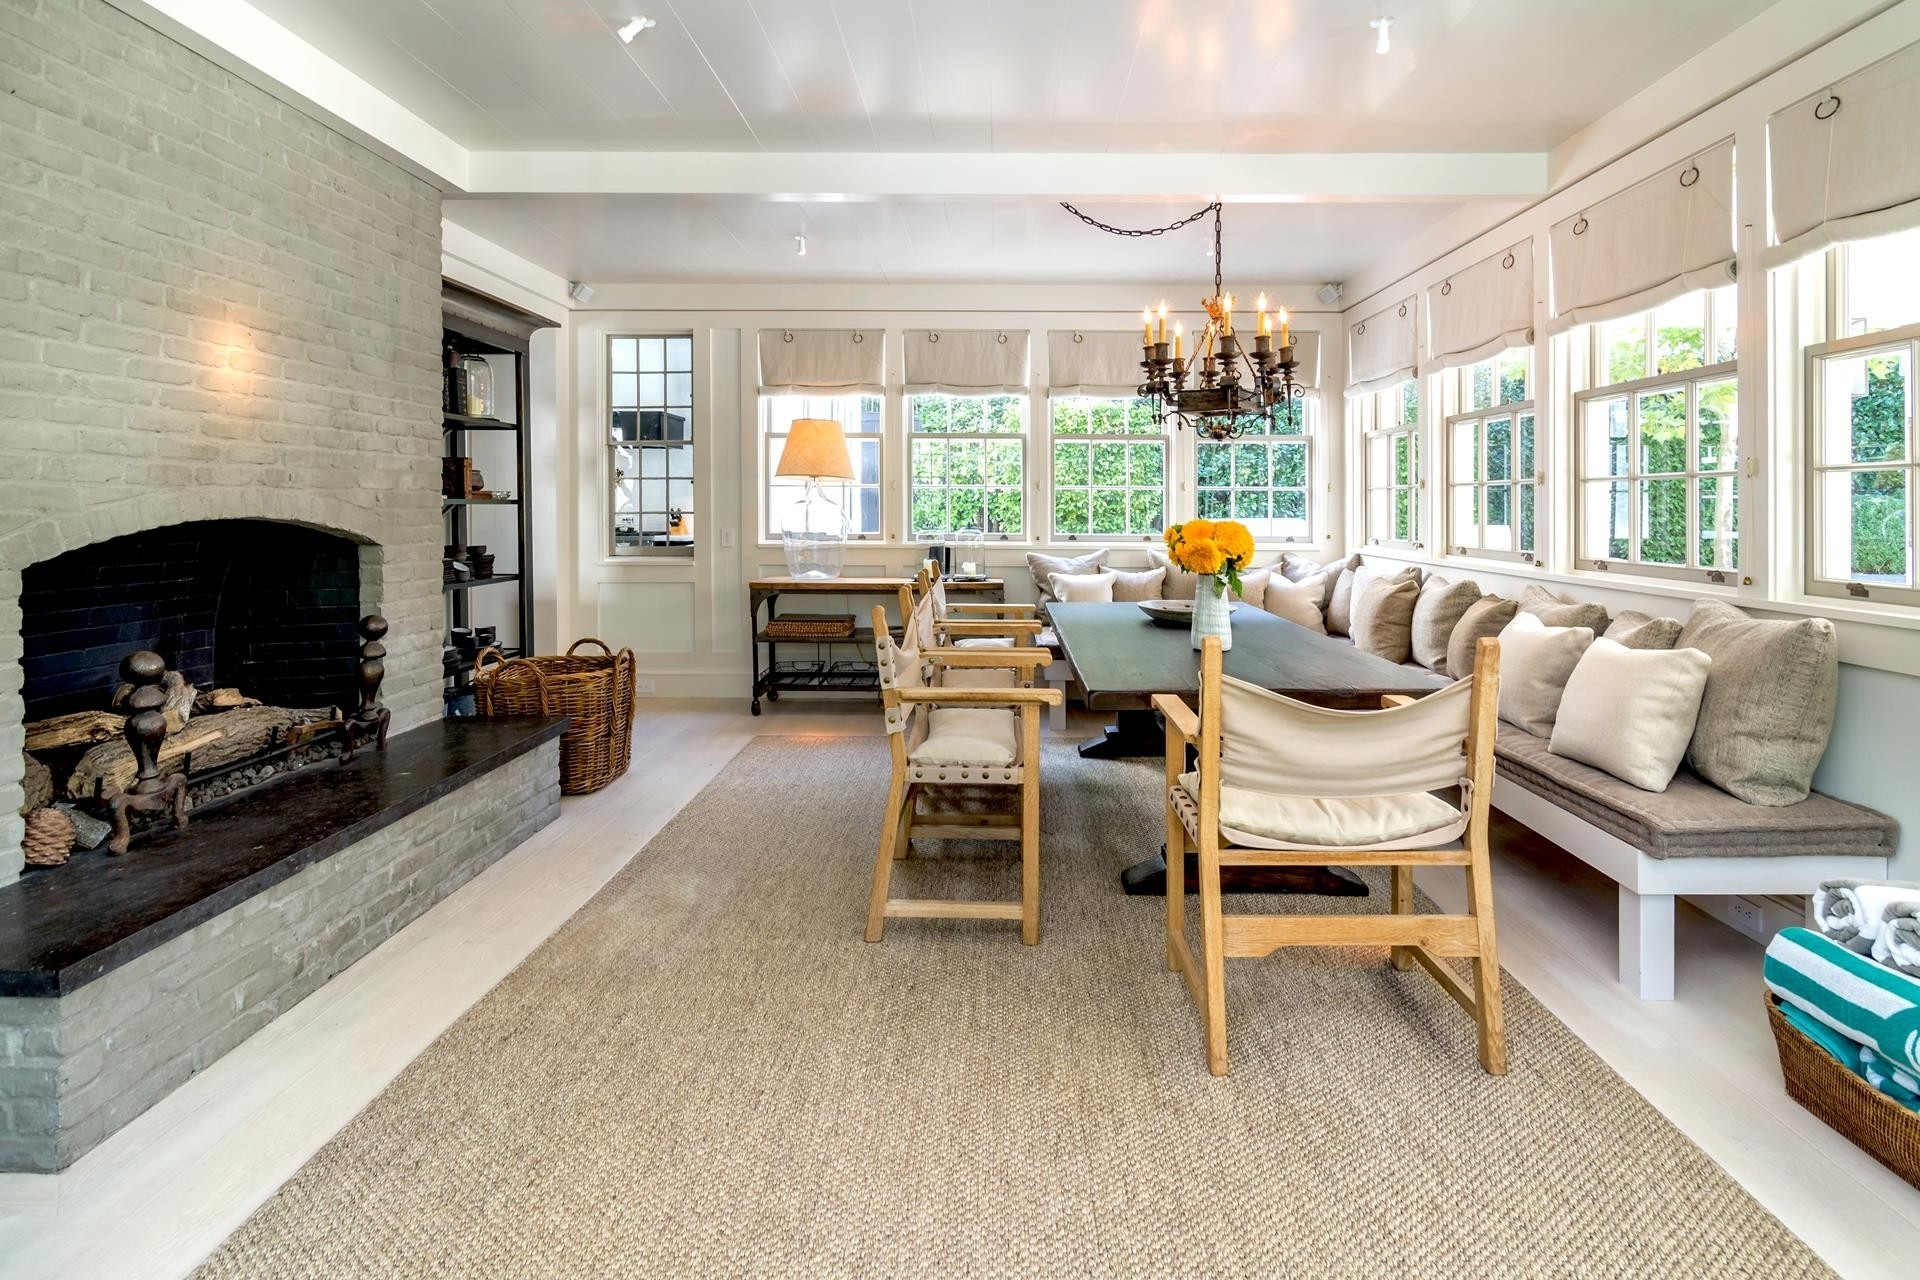 4. Single Family Homes for Sale at Sag Harbor Village, Sag Harbor, NY 11963